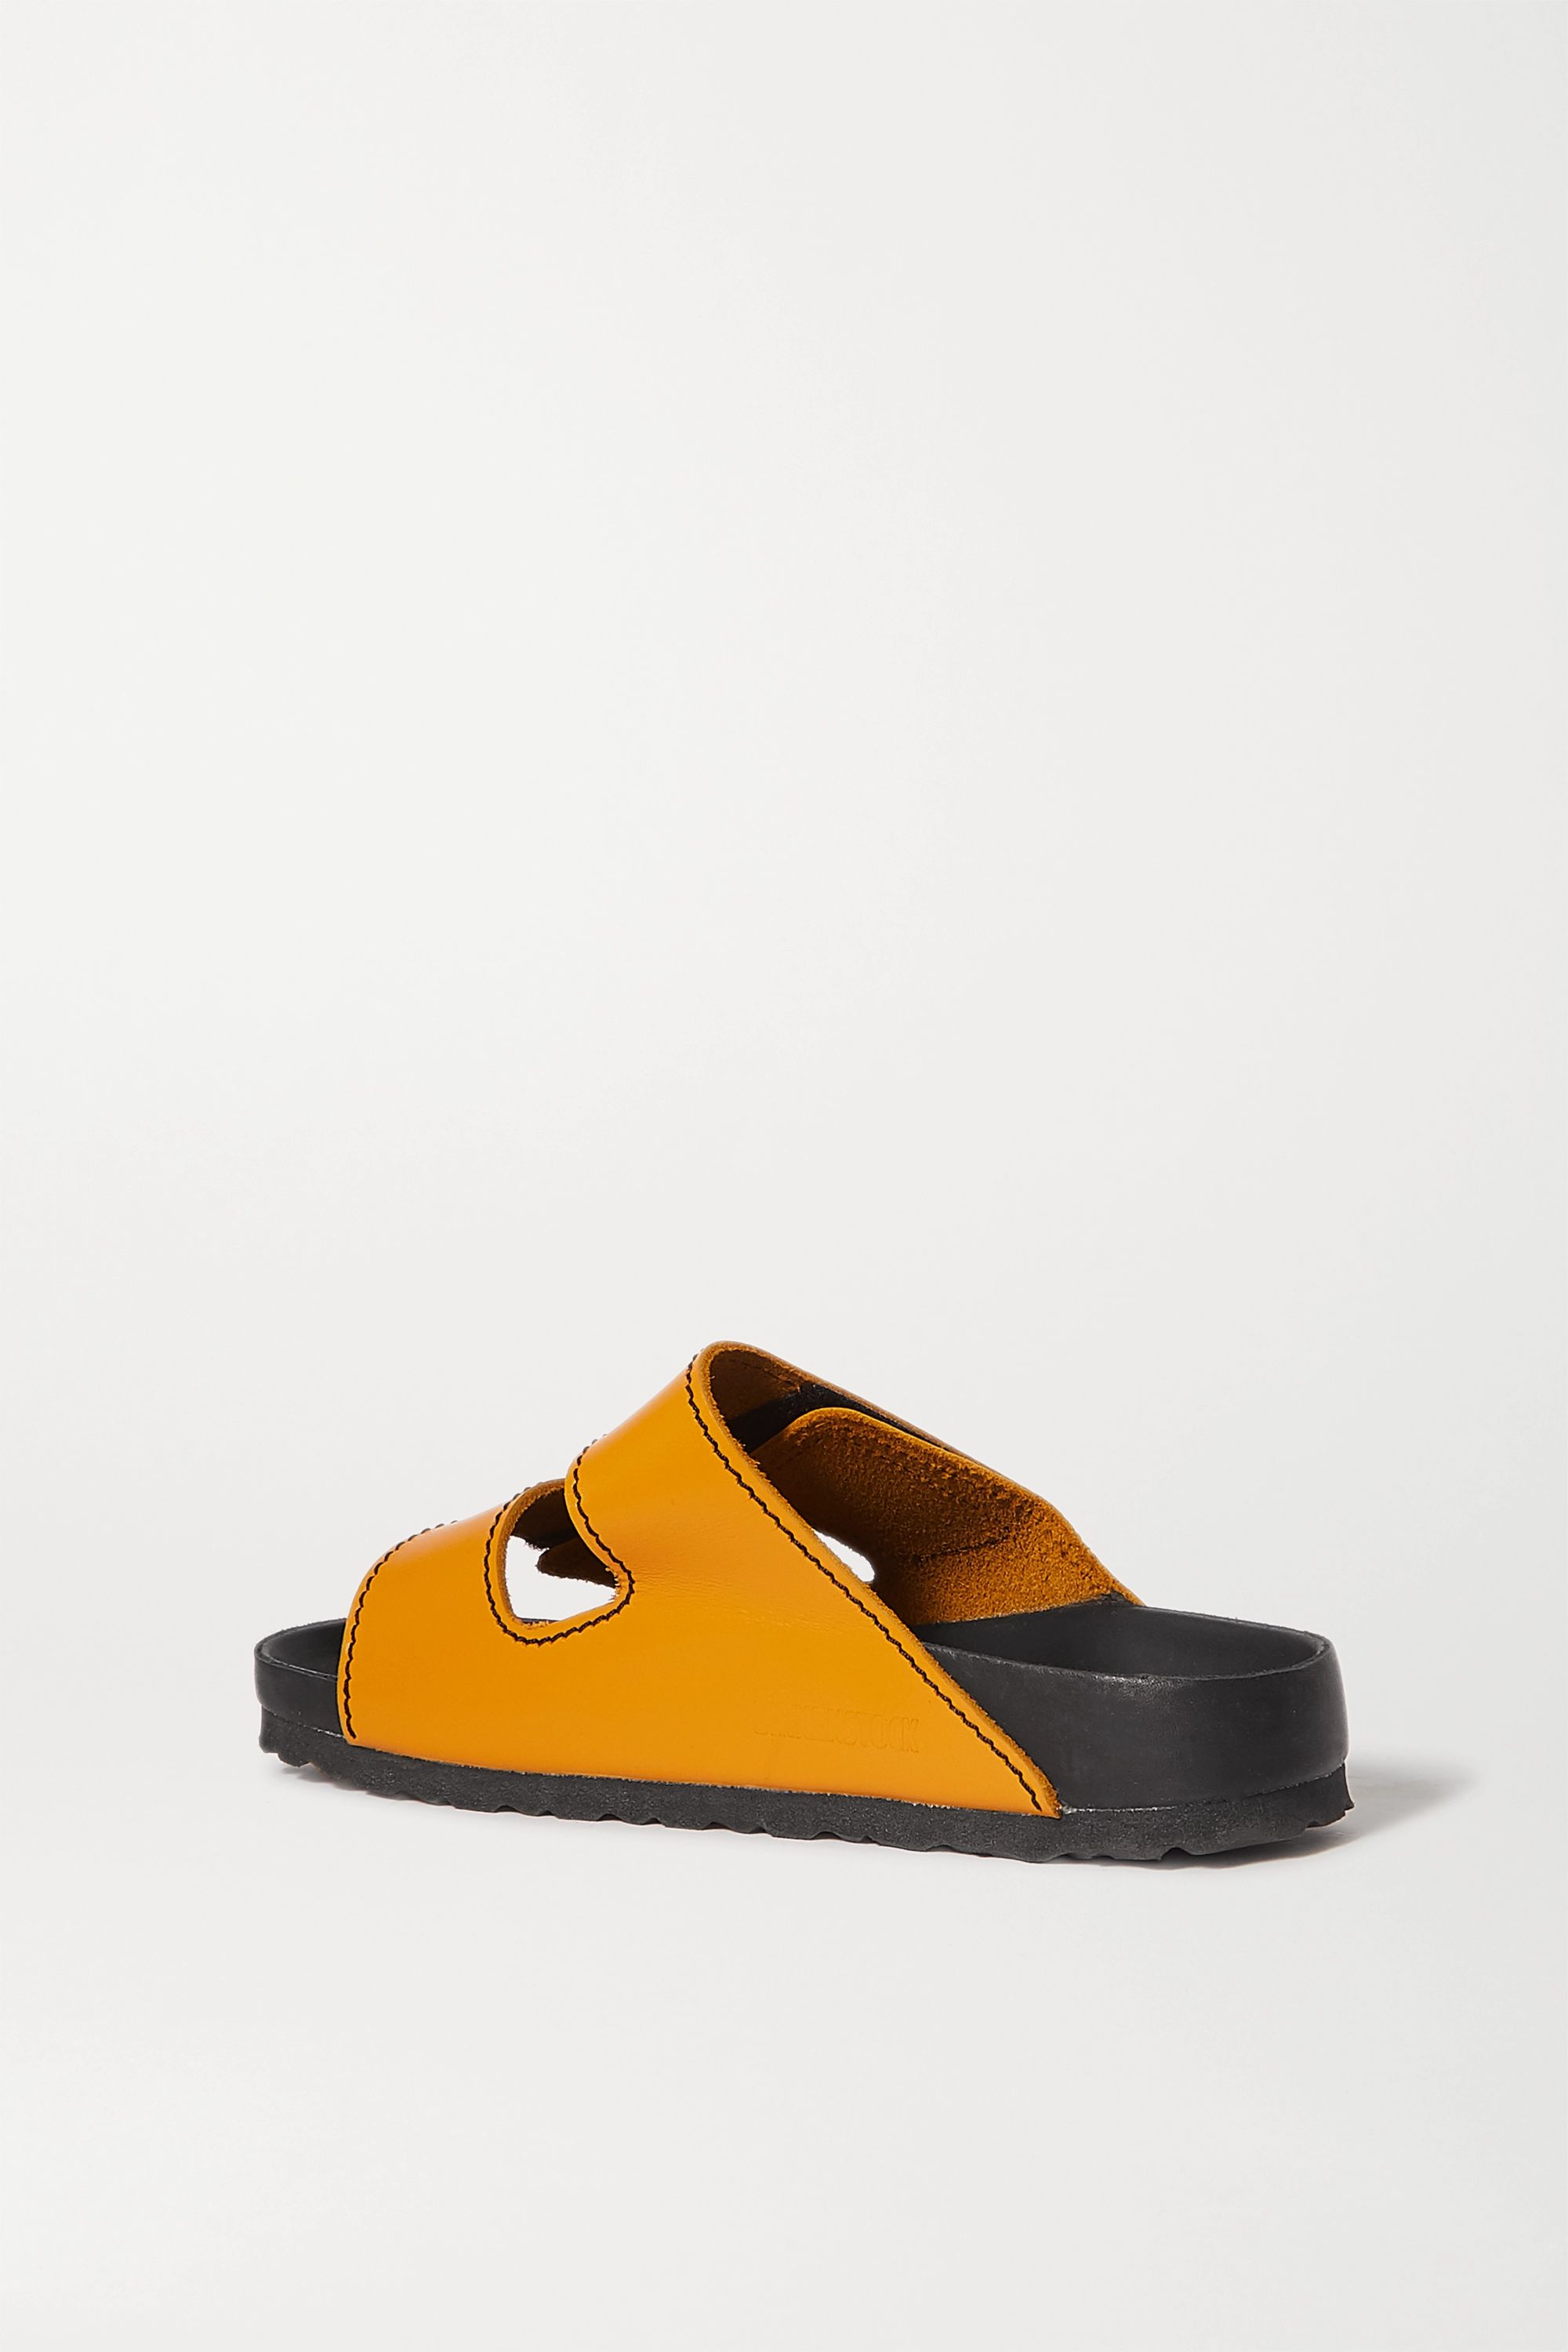 Proenza Schouler + Birkenstock Arizona topstitched glossed-leather sandals